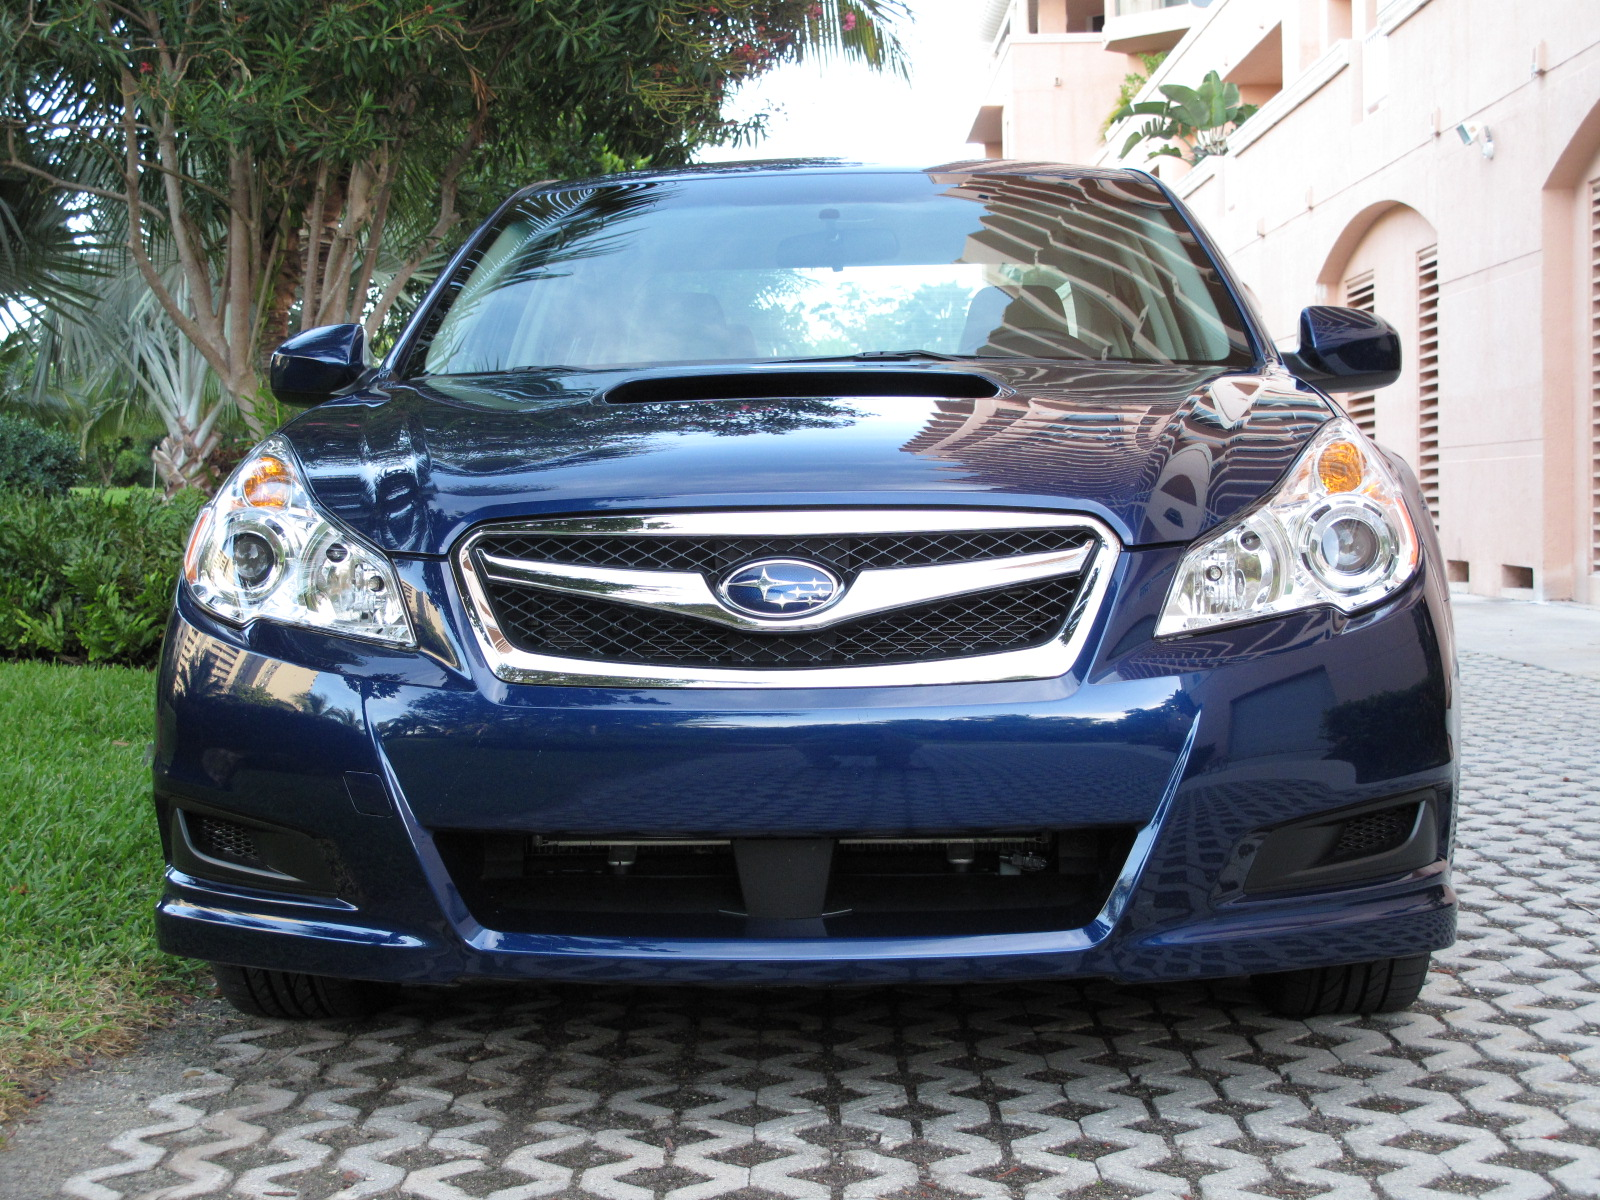 Subaru Legacy 3.6 R >> Initial Thoughts: 2010 Subaru Legacy 2.5 GT Limited | Top Speed